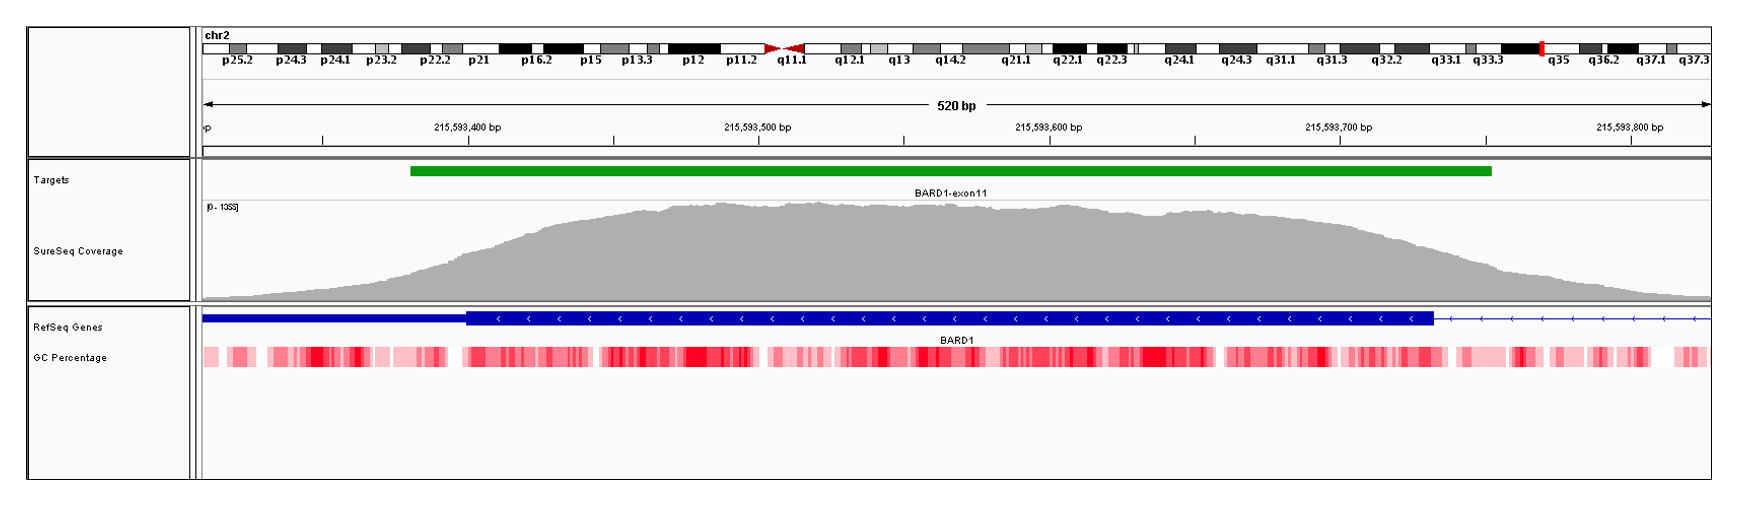 BARD1 Exon 11 (hg19 chr2:215593275-215593732). Depth of coverage per base (grey). Targeted region (green). Gene coding region as defined by RefSeq (blue). GC percentage (red). Image